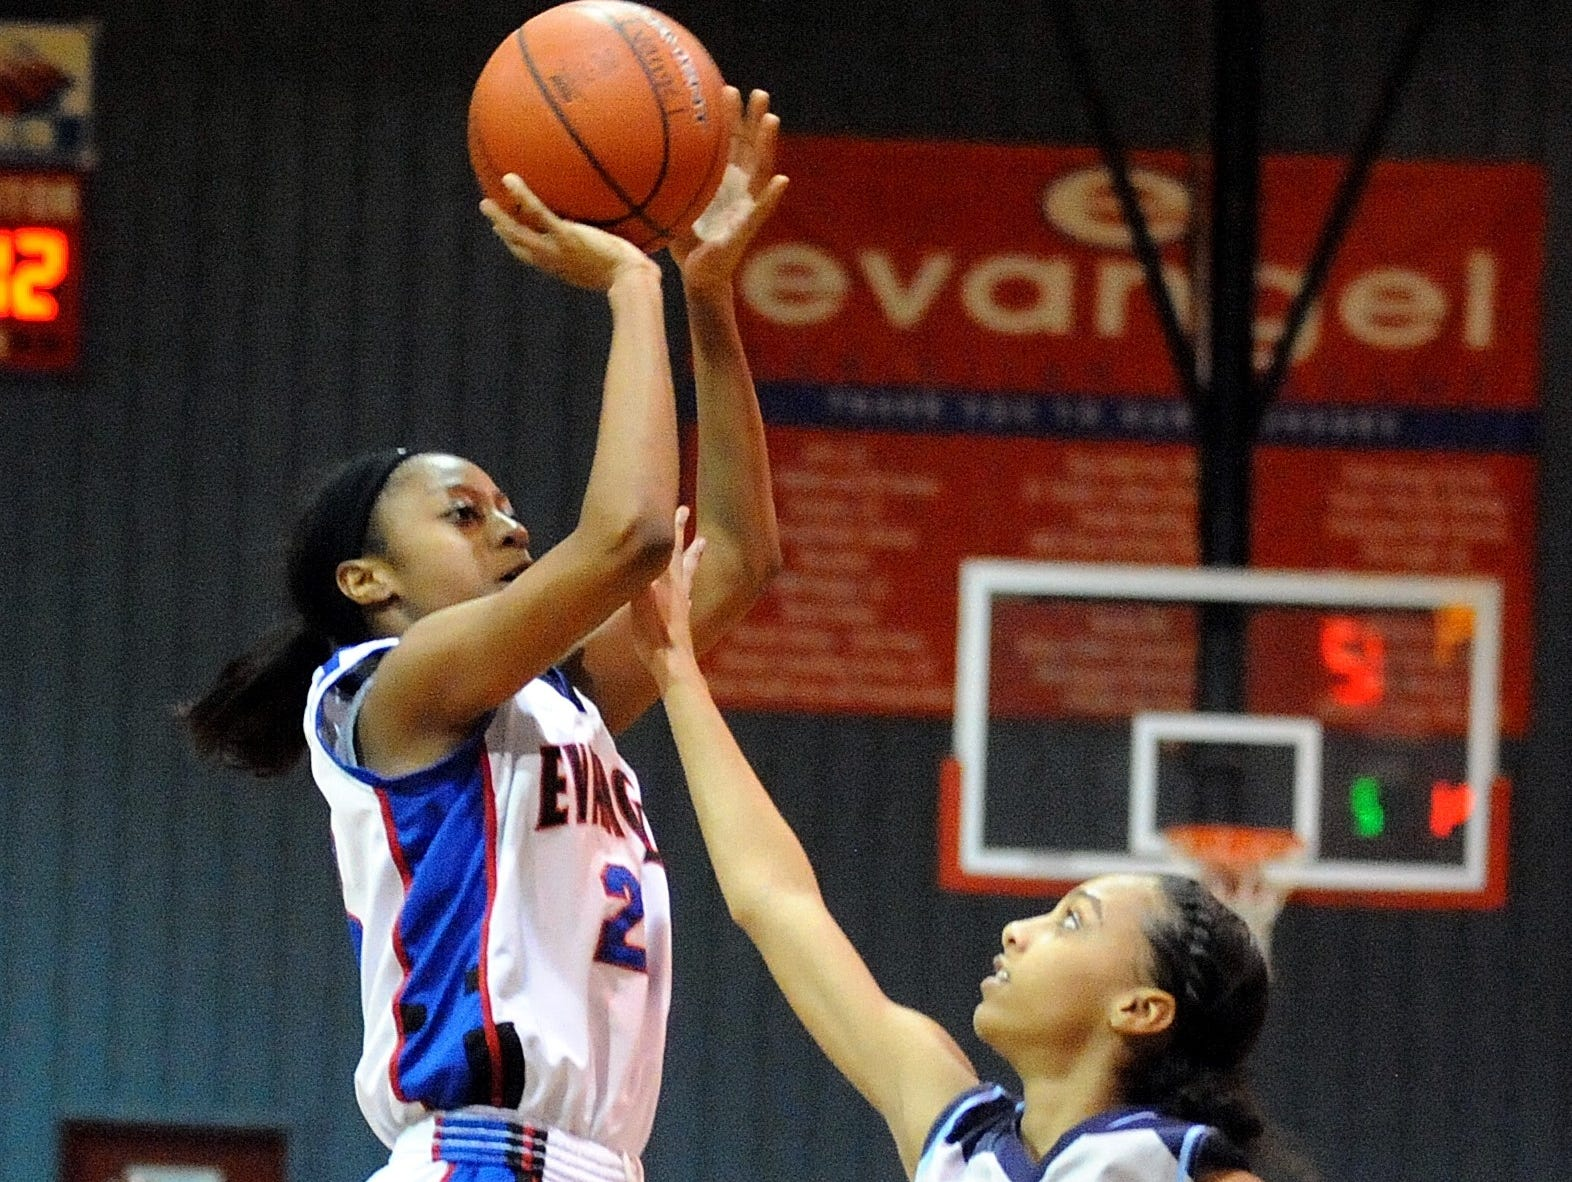 Evangel's Tiara Young puts up two of her 32 points against Airline Tuesday night.